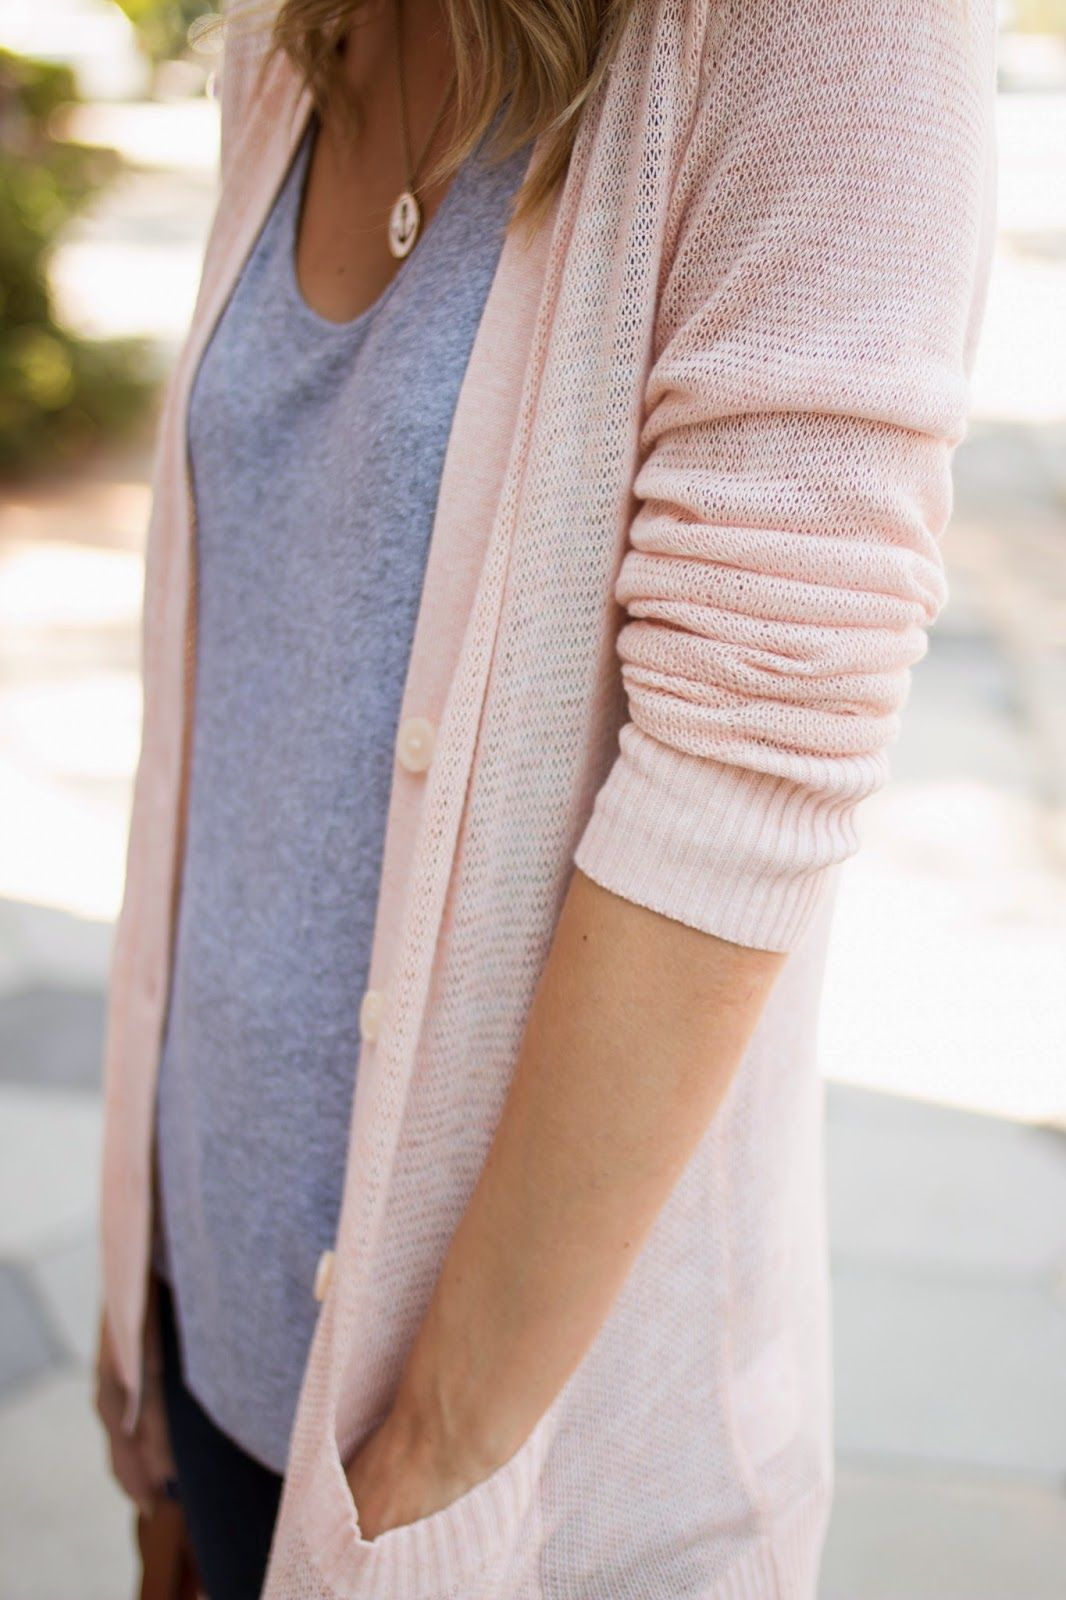 A Few of My New Favorite Things | Peach, Layering and Stitch